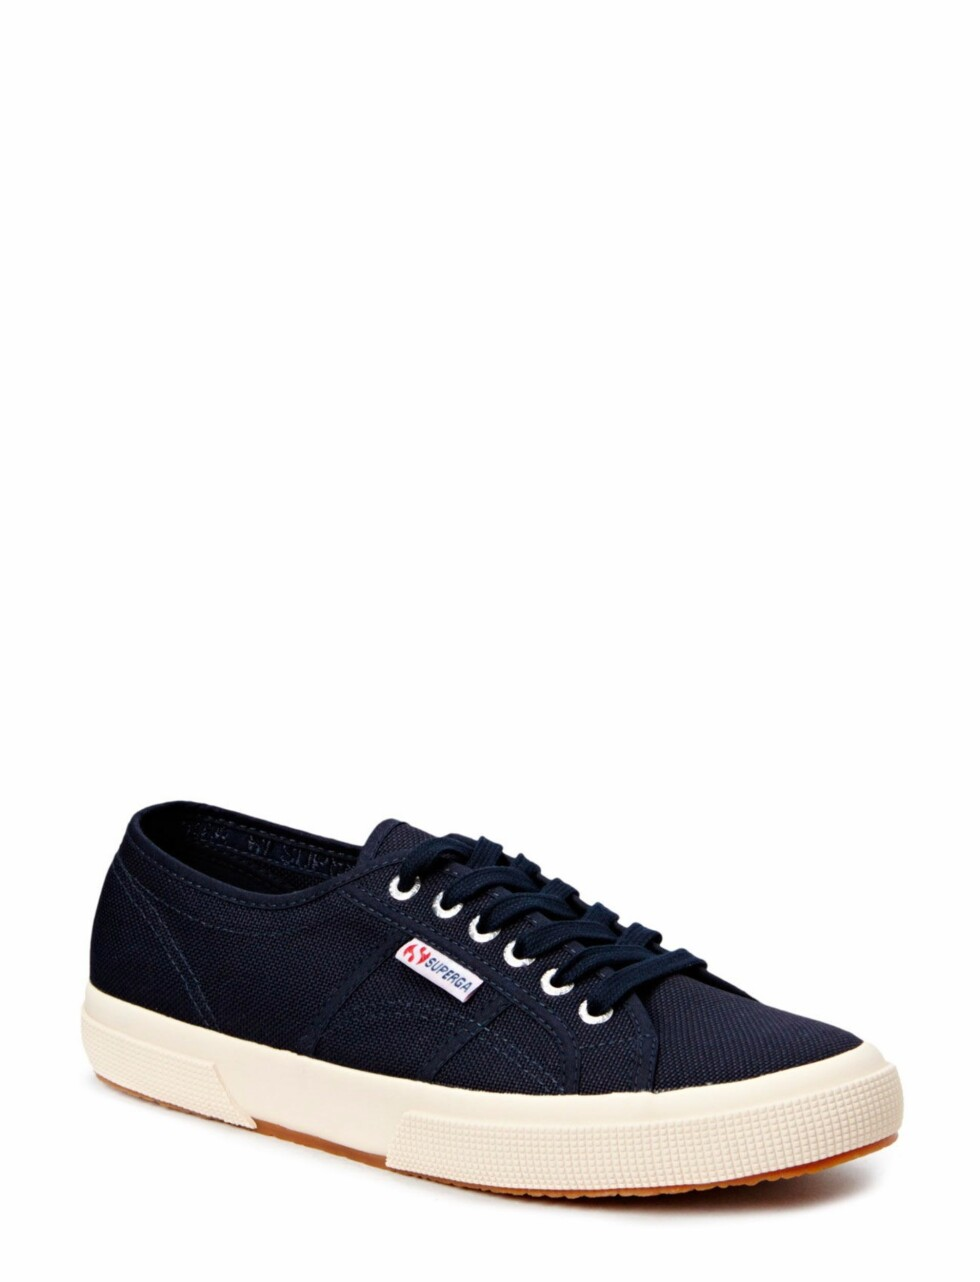 Sneakers fra Superga via Nelly.com | kr 375 |  https://my.nelly.com/link/click/25317